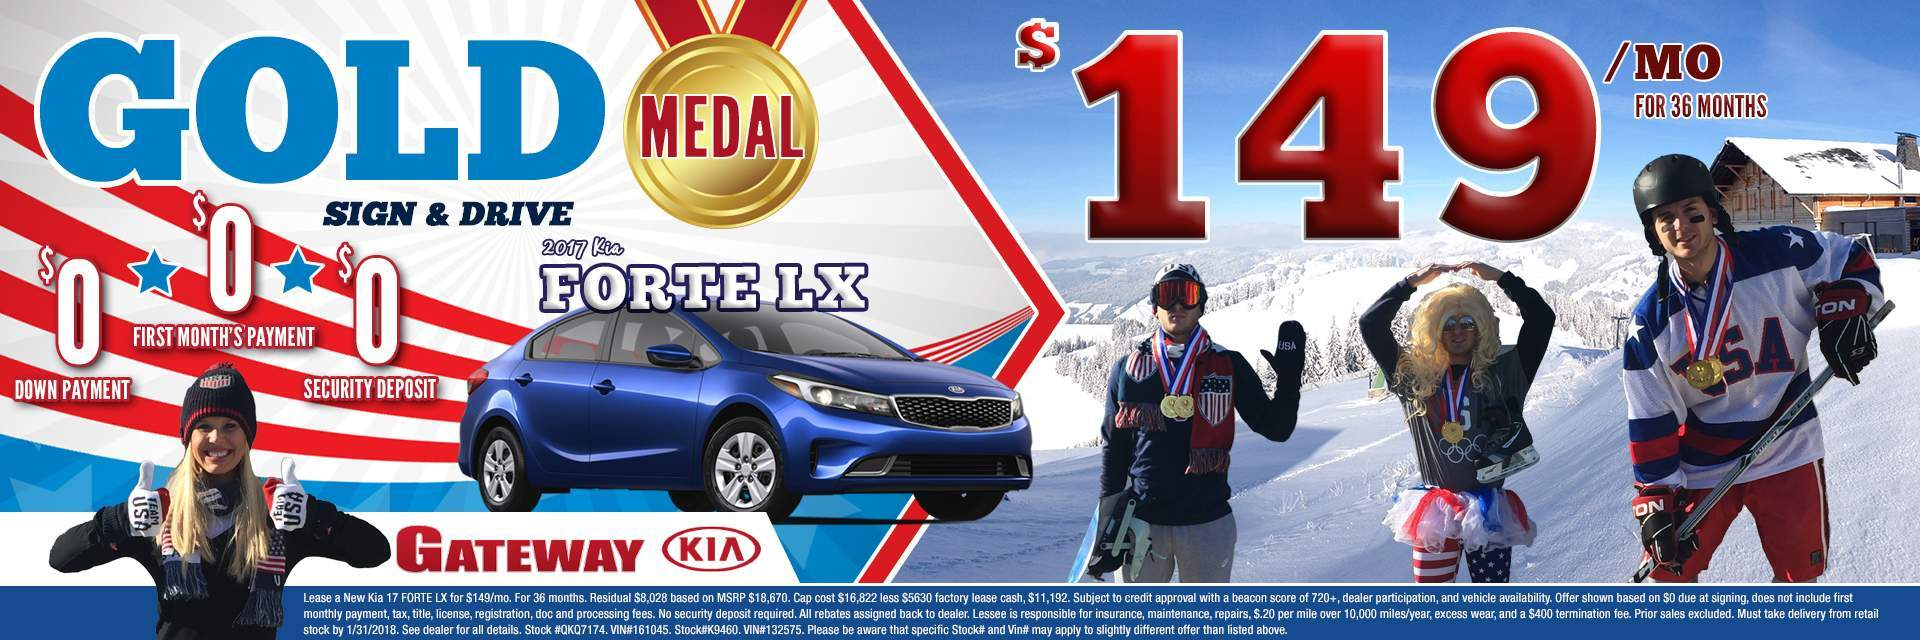 $149 Forte - Gold Medal Sign and Drive